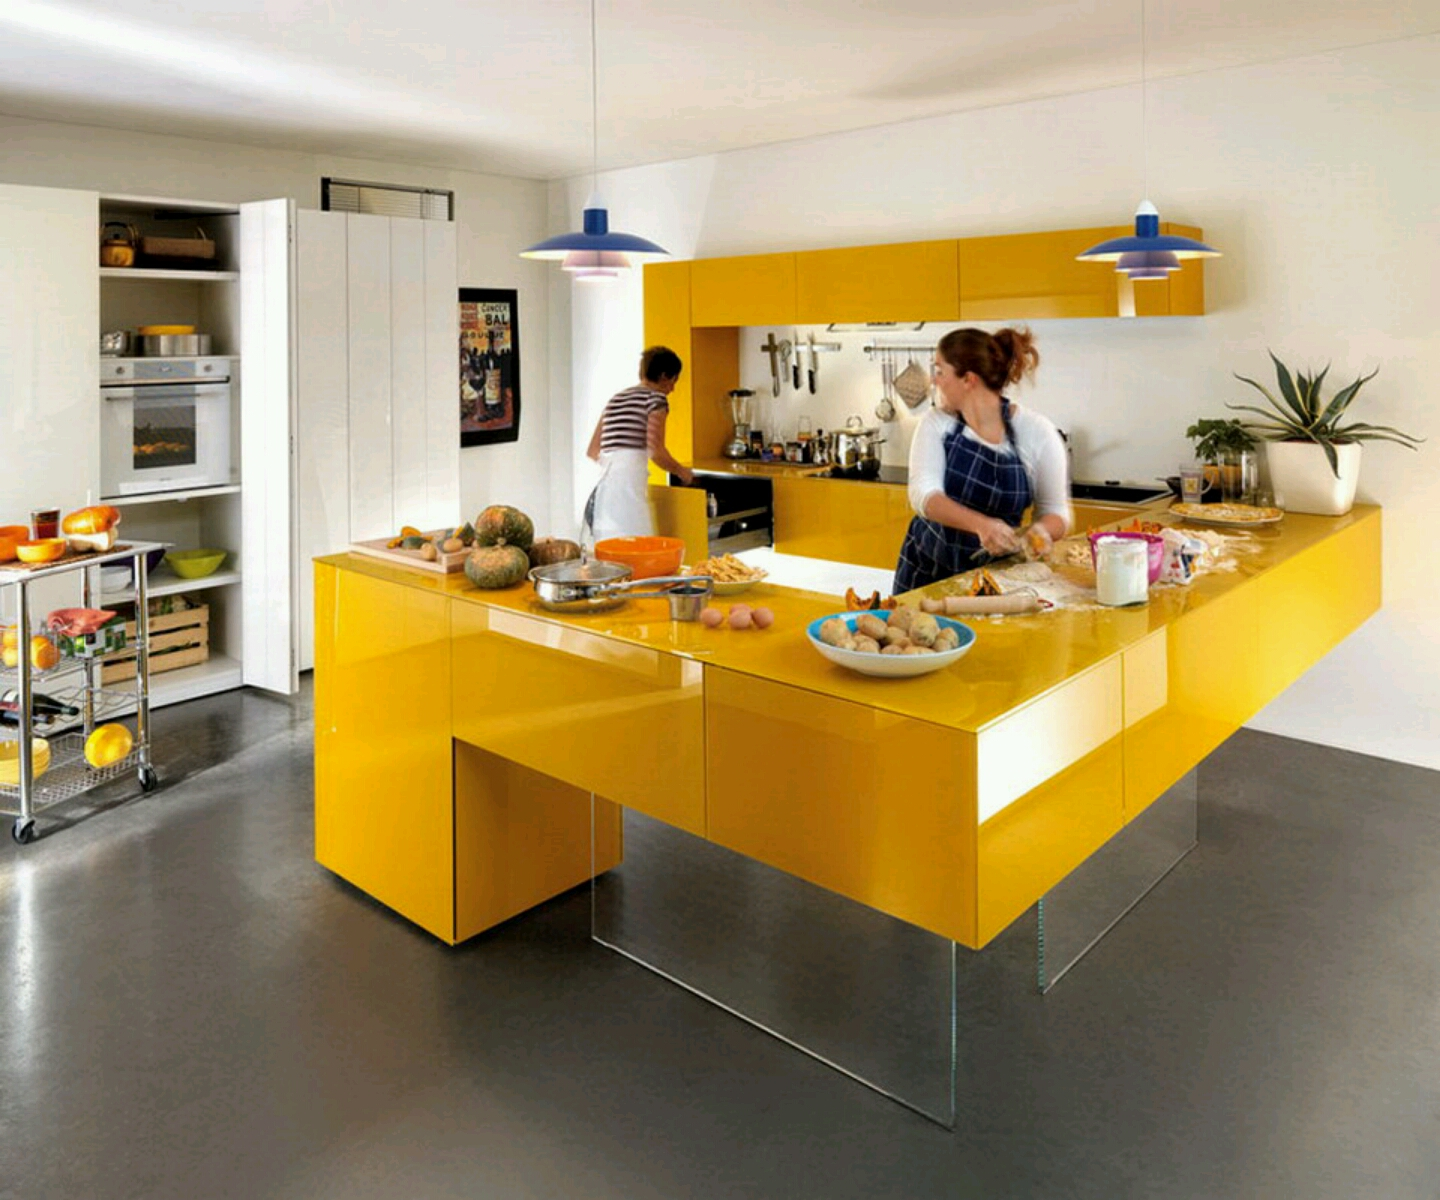 Modern kitchen cabinets designs ideas furniture gallery for Kitchen ideas and designs